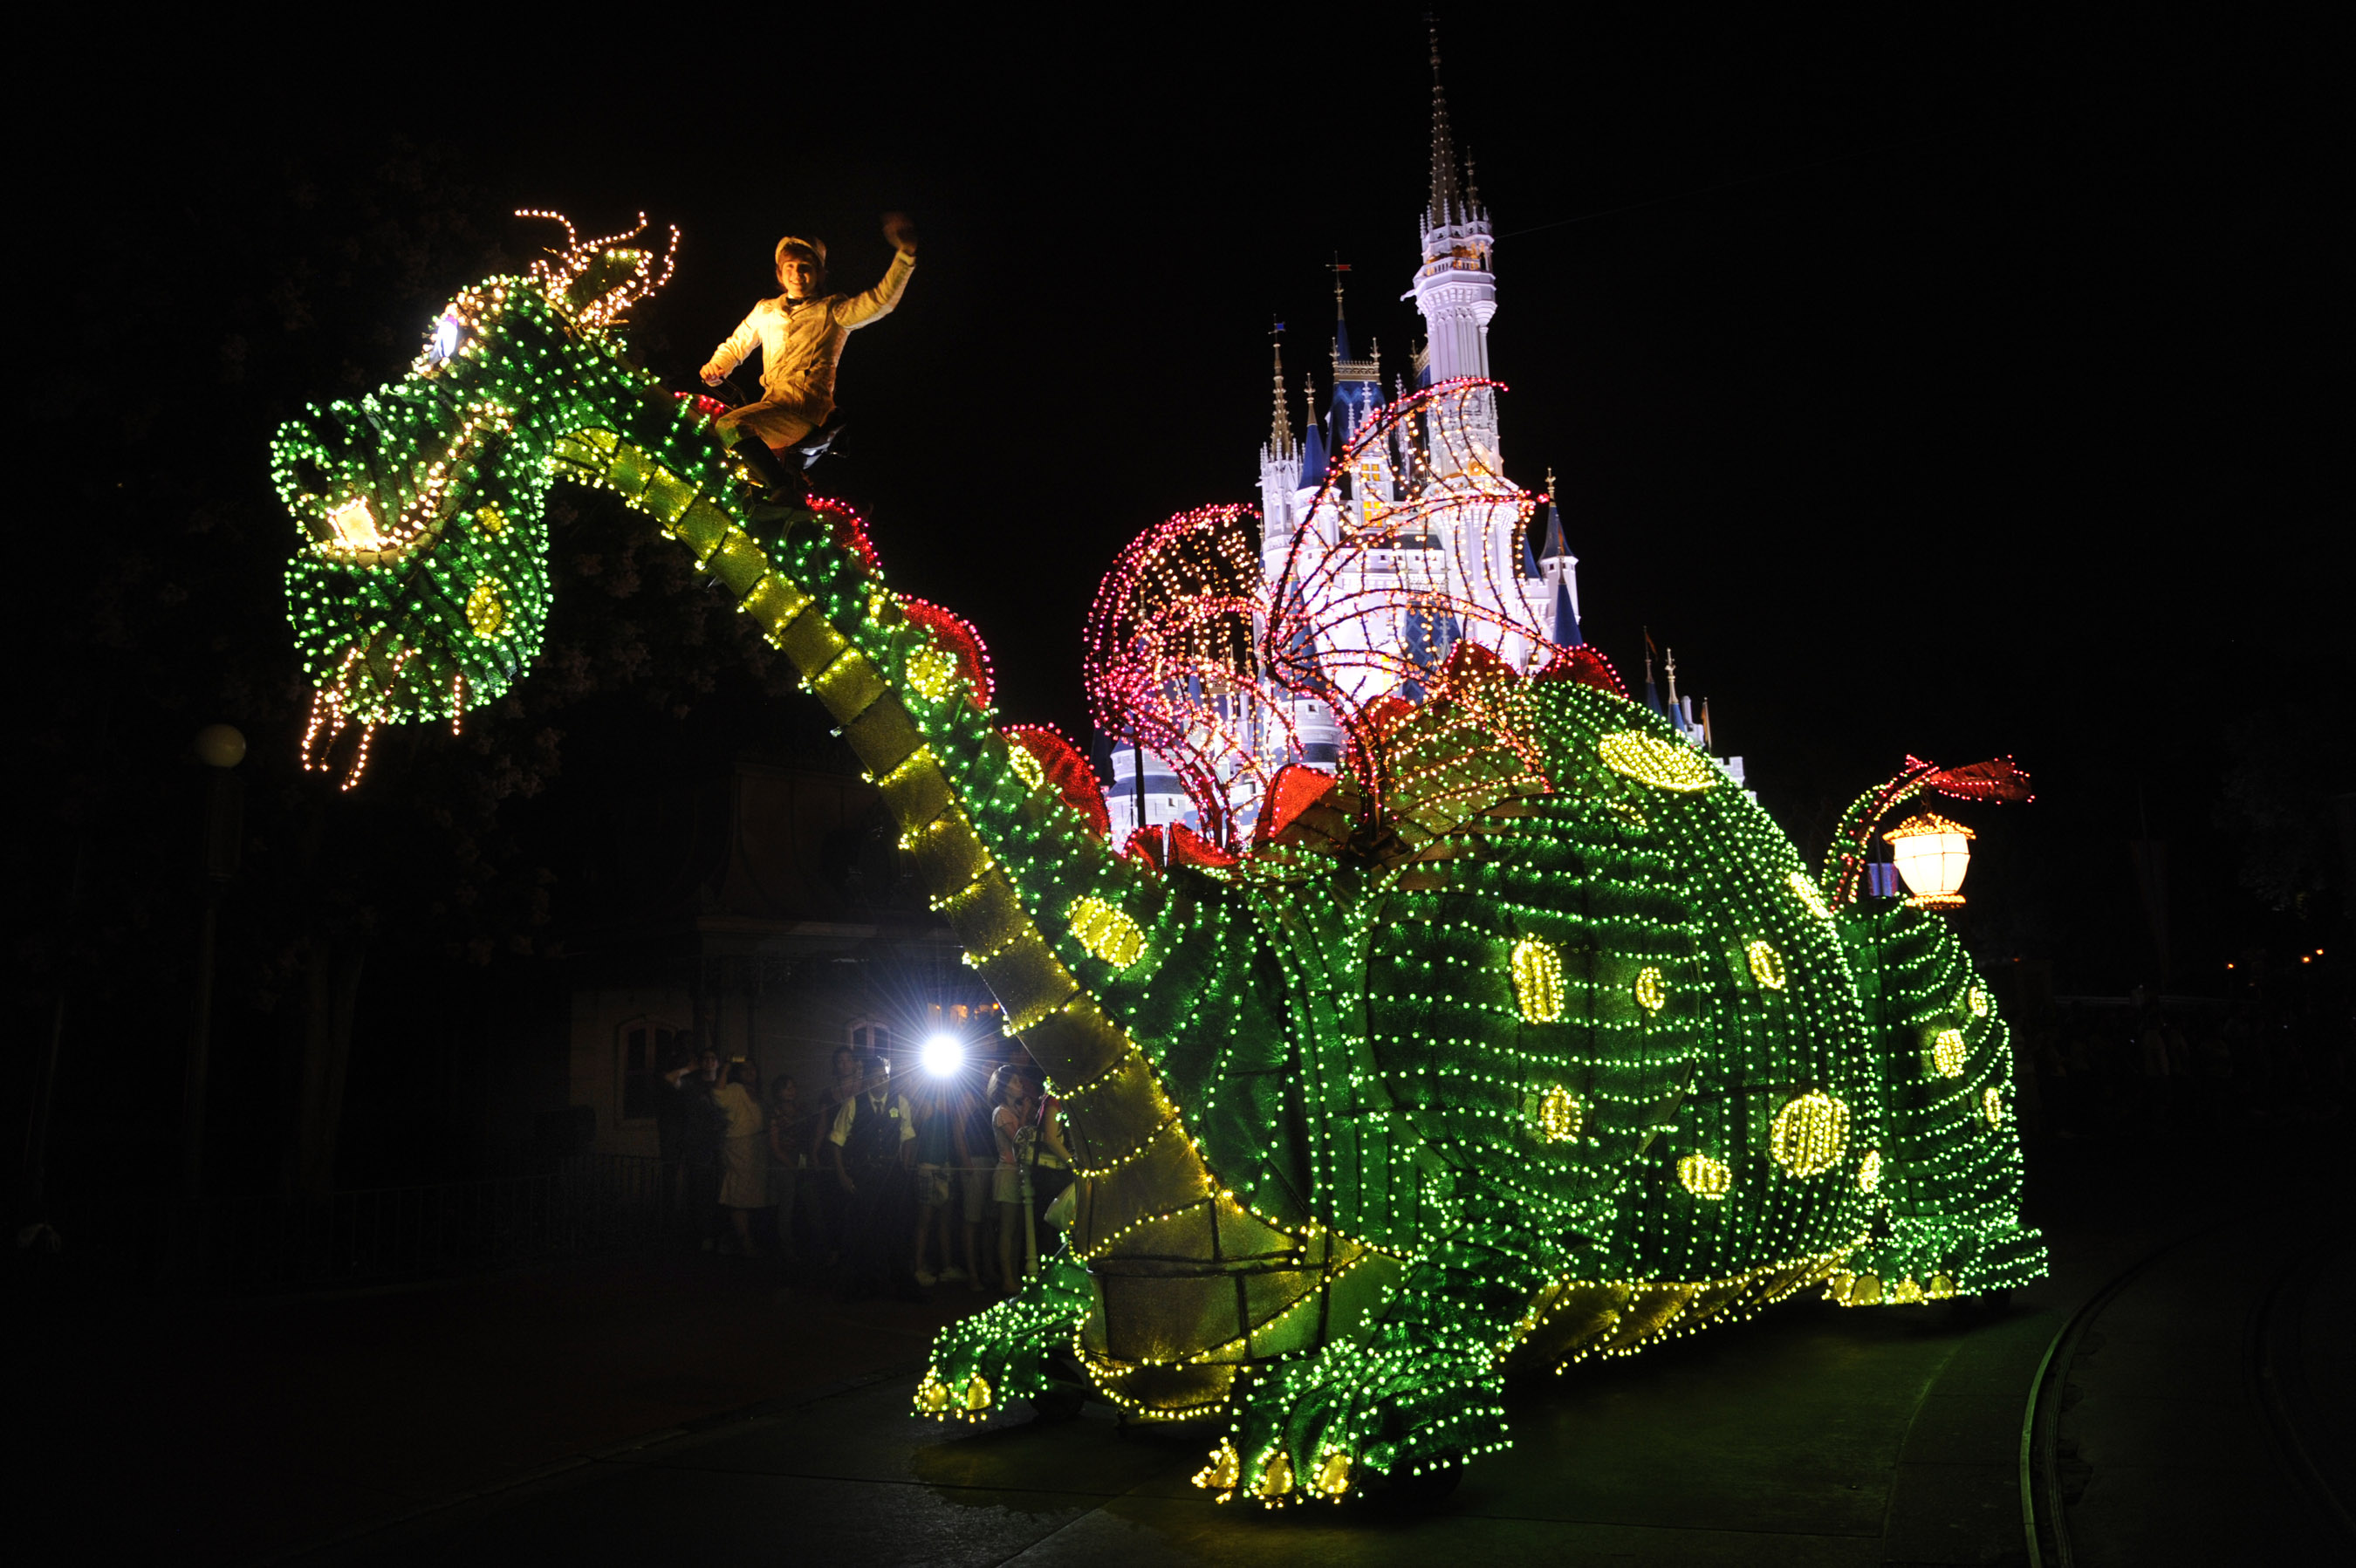 Rewinding the Magic-The Return of the Main St Electrical Parade